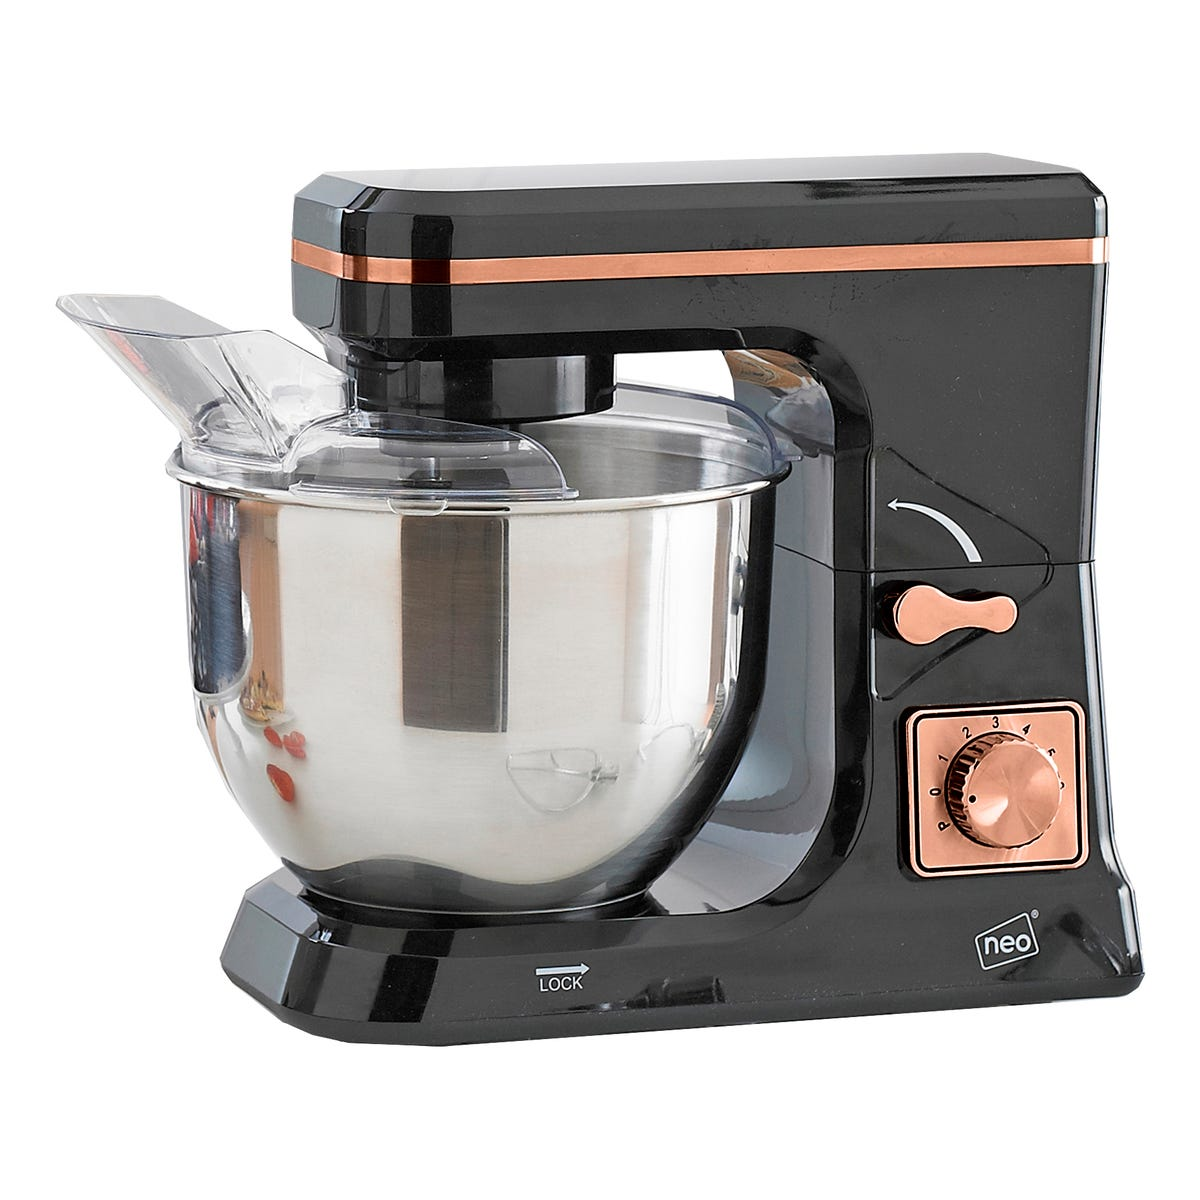 Neo 5L 800W 6 Speed Electric Stand Mixer - Copper and Black